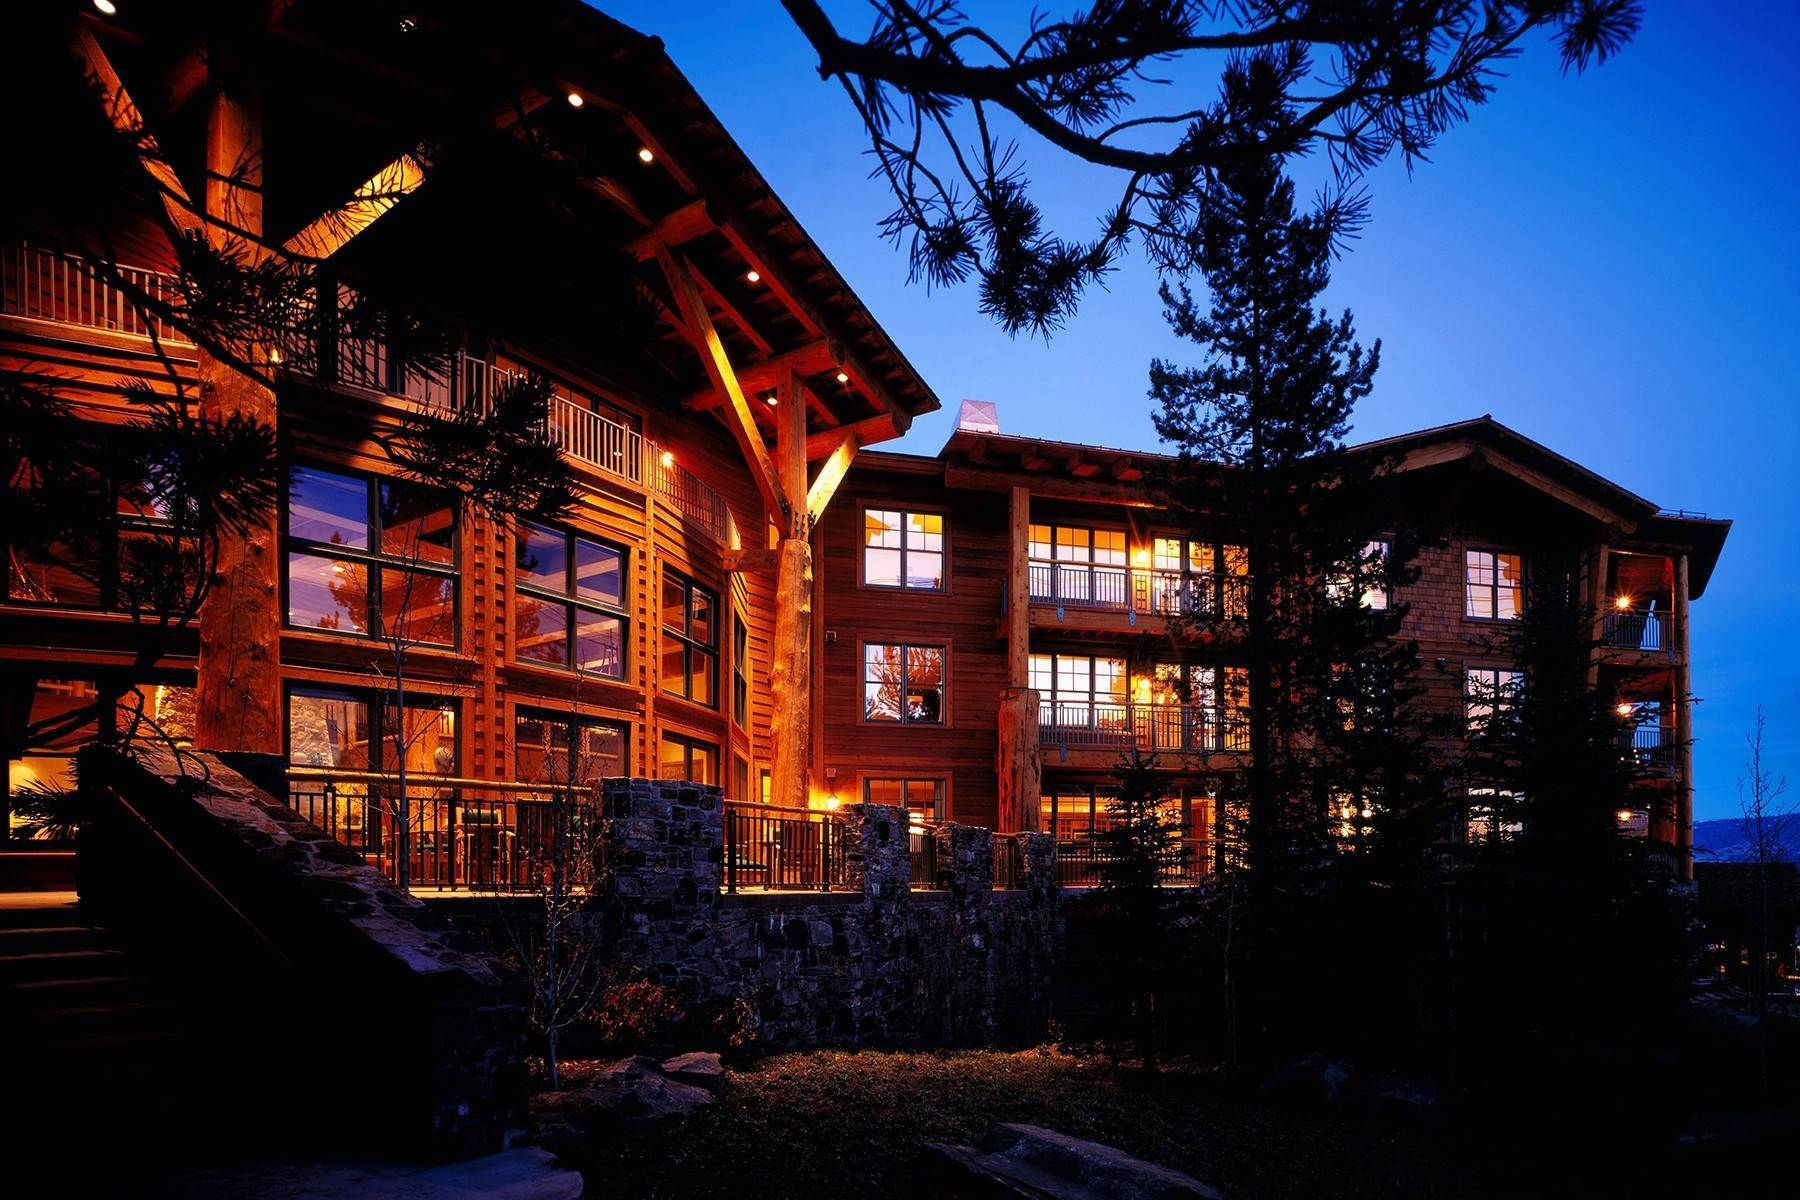 fractional ownership prop for Sale at 3340 W Cody Ln, #403 Teton Village, Wyoming 83025 United States